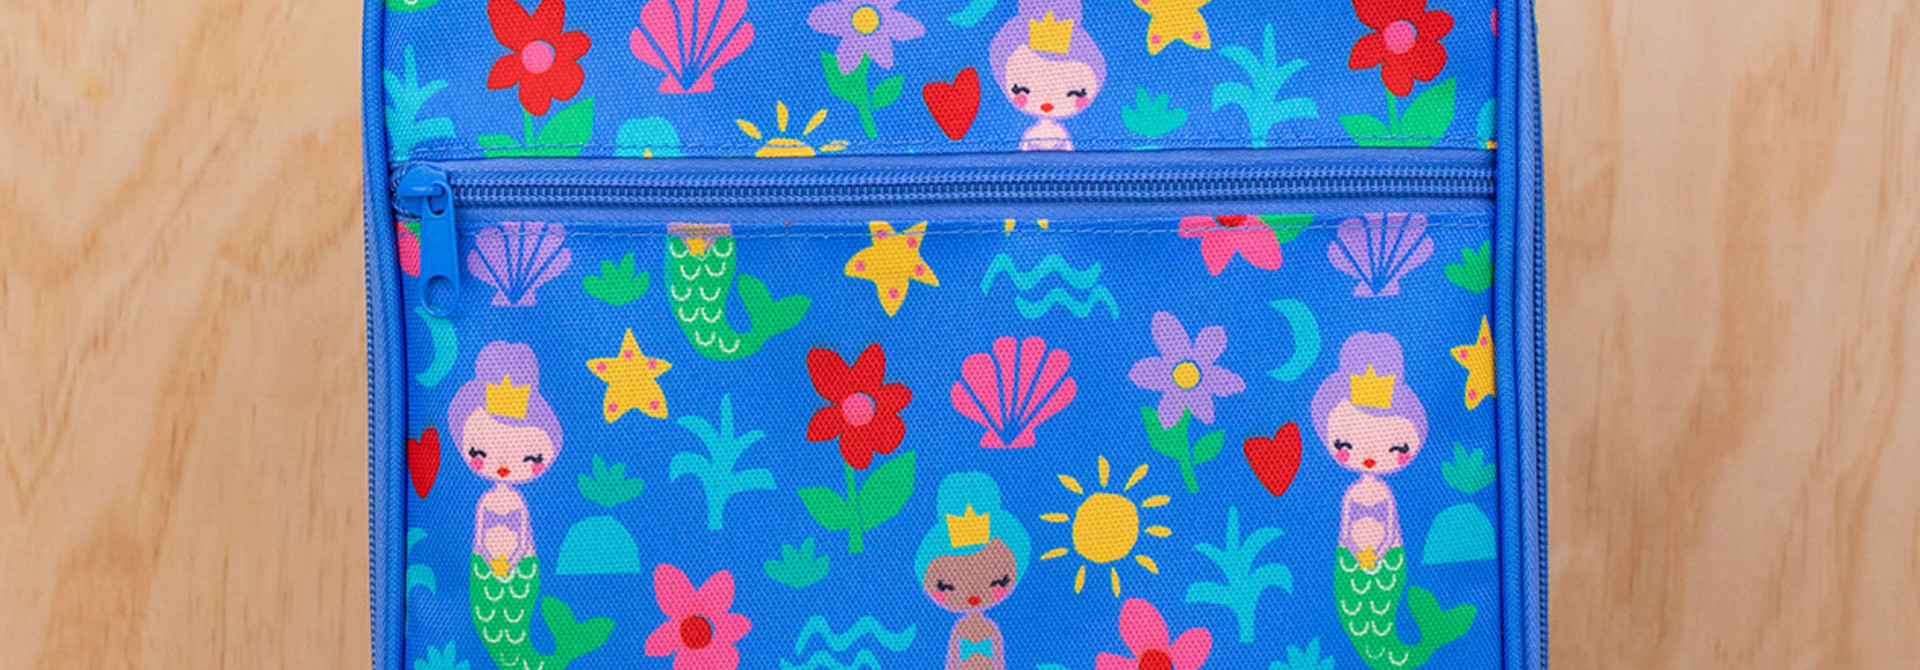 Montii insulated Lunch Bag - Mermaid V3